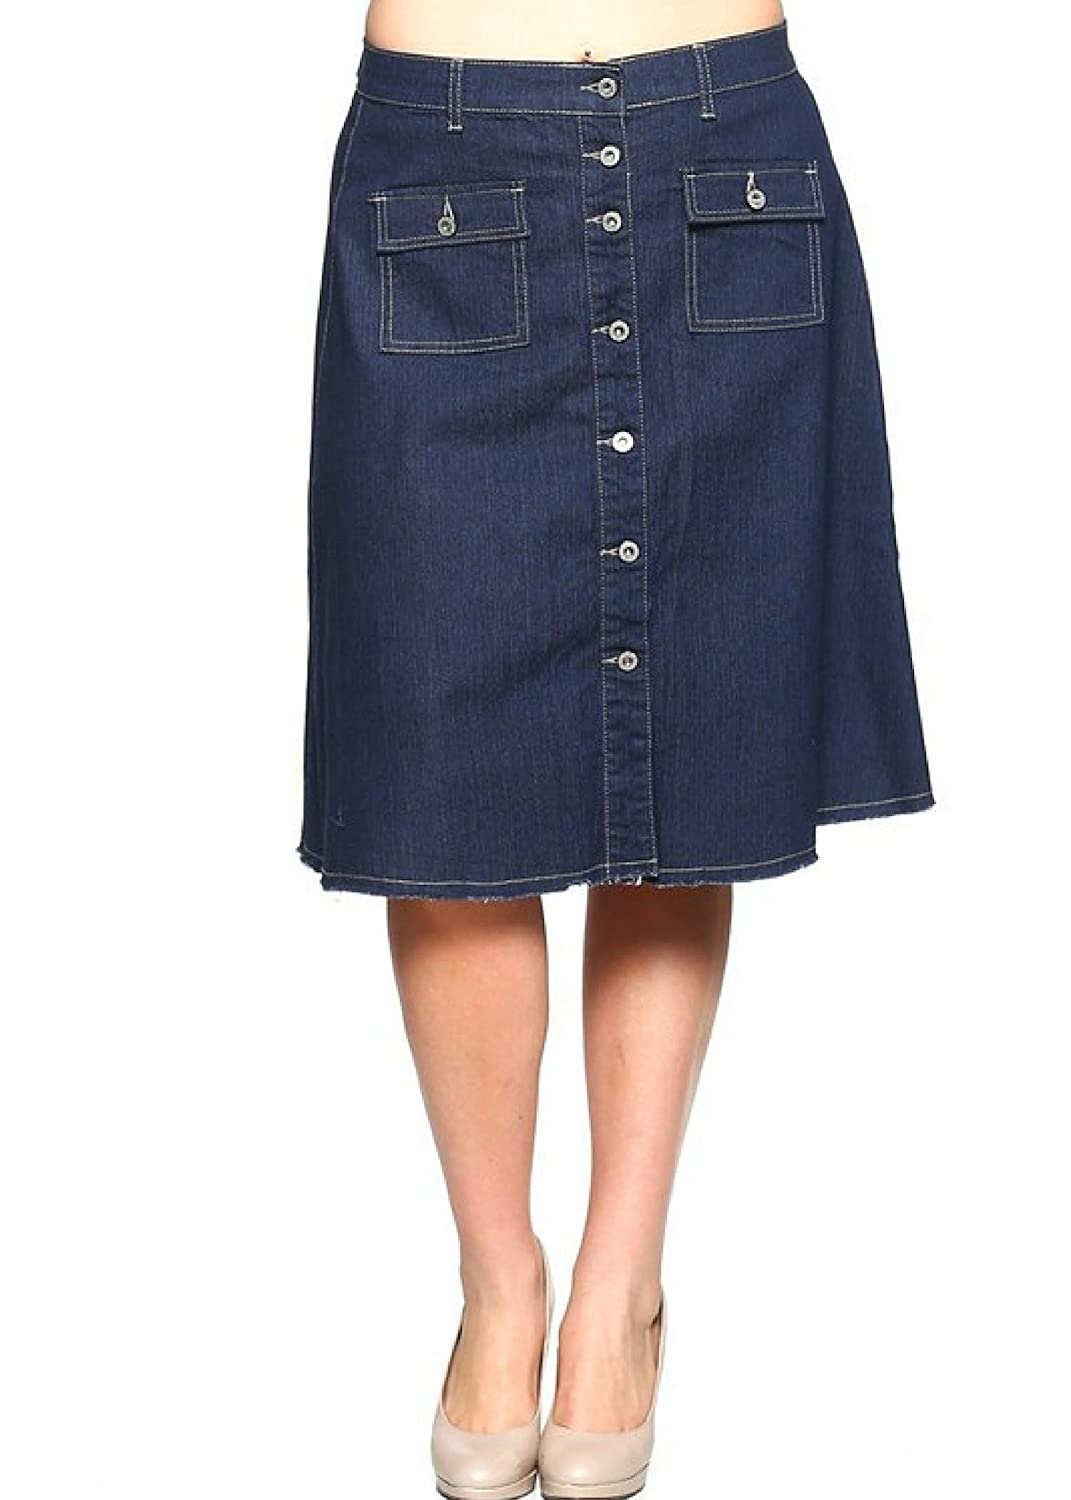 PLUS Stitching Dark Wash Denim Skirt NWT Woman Boutique Clothes Skirts *SALE*